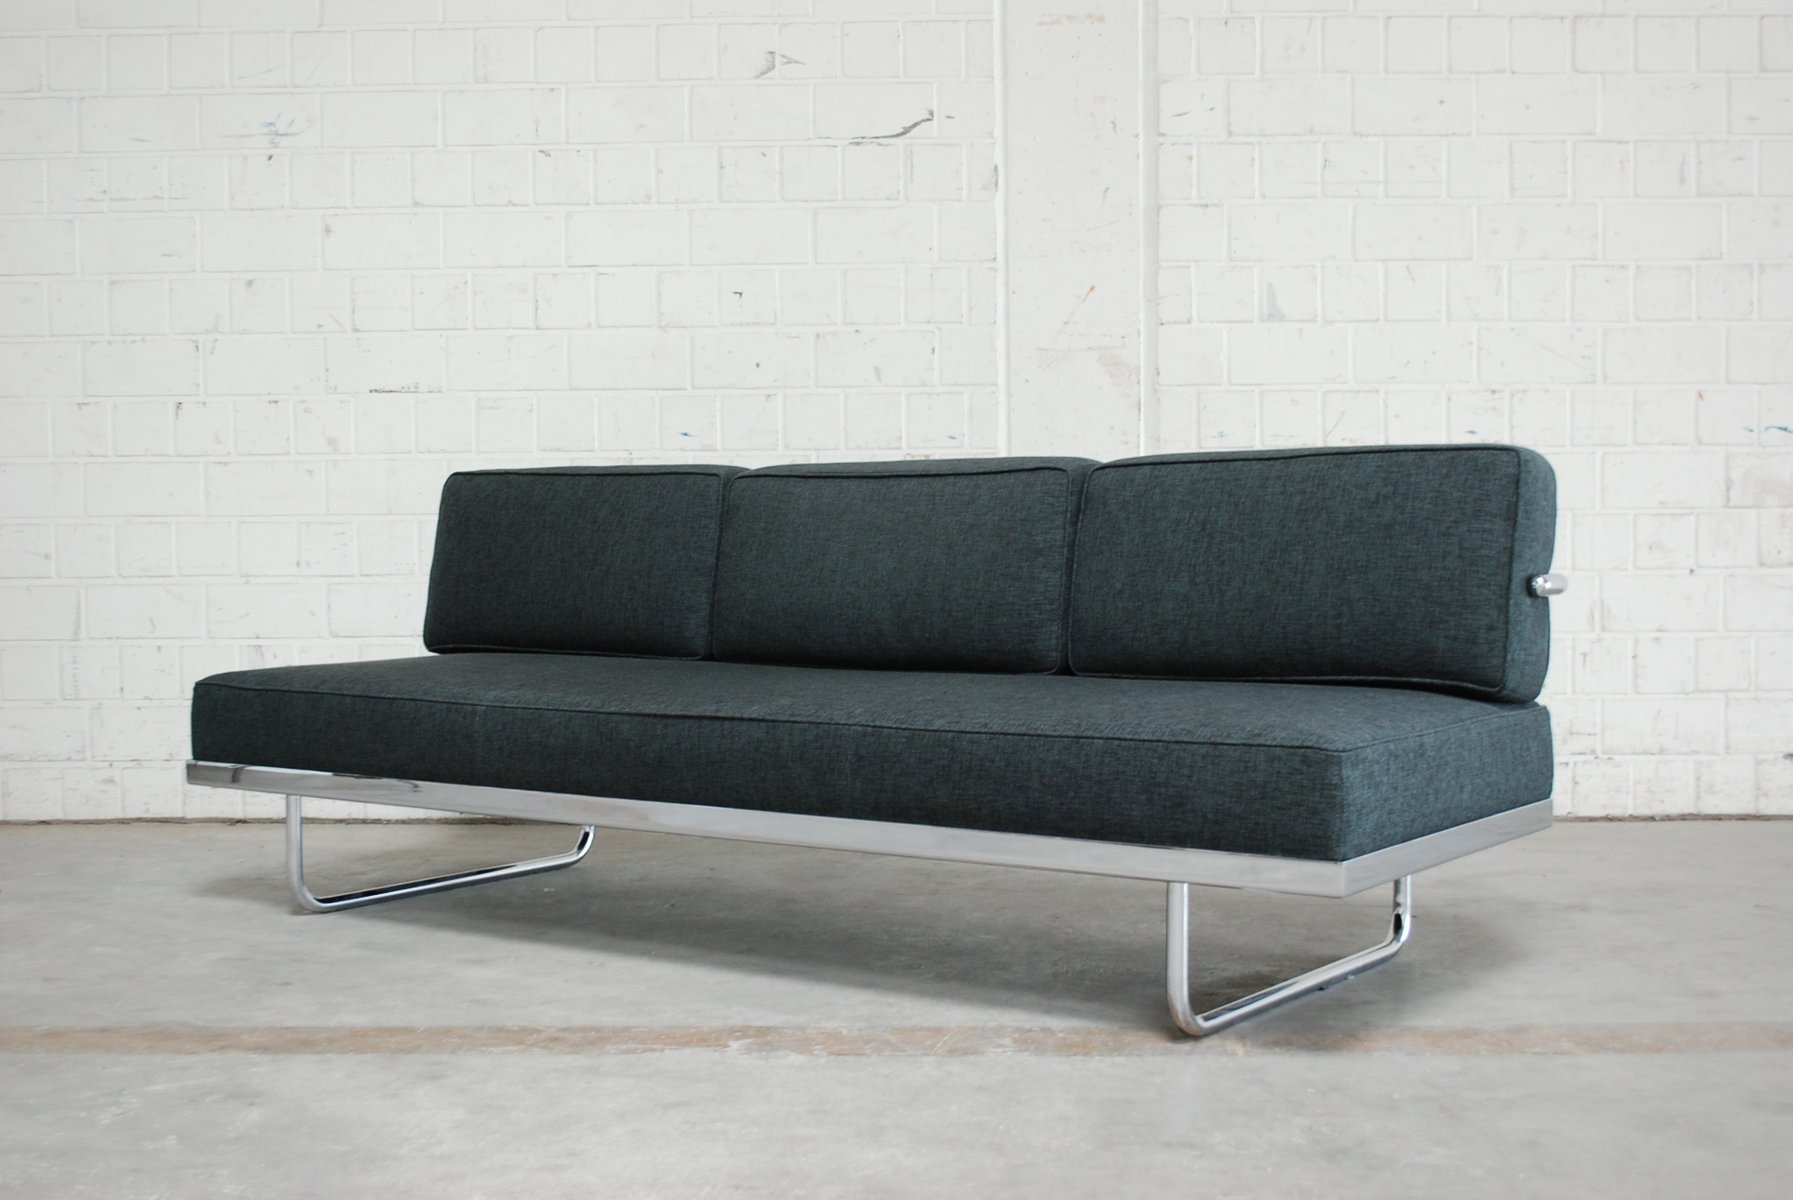 lc5 sofa price single cushion canada vintage f daybed by le corbusier for cassina sale